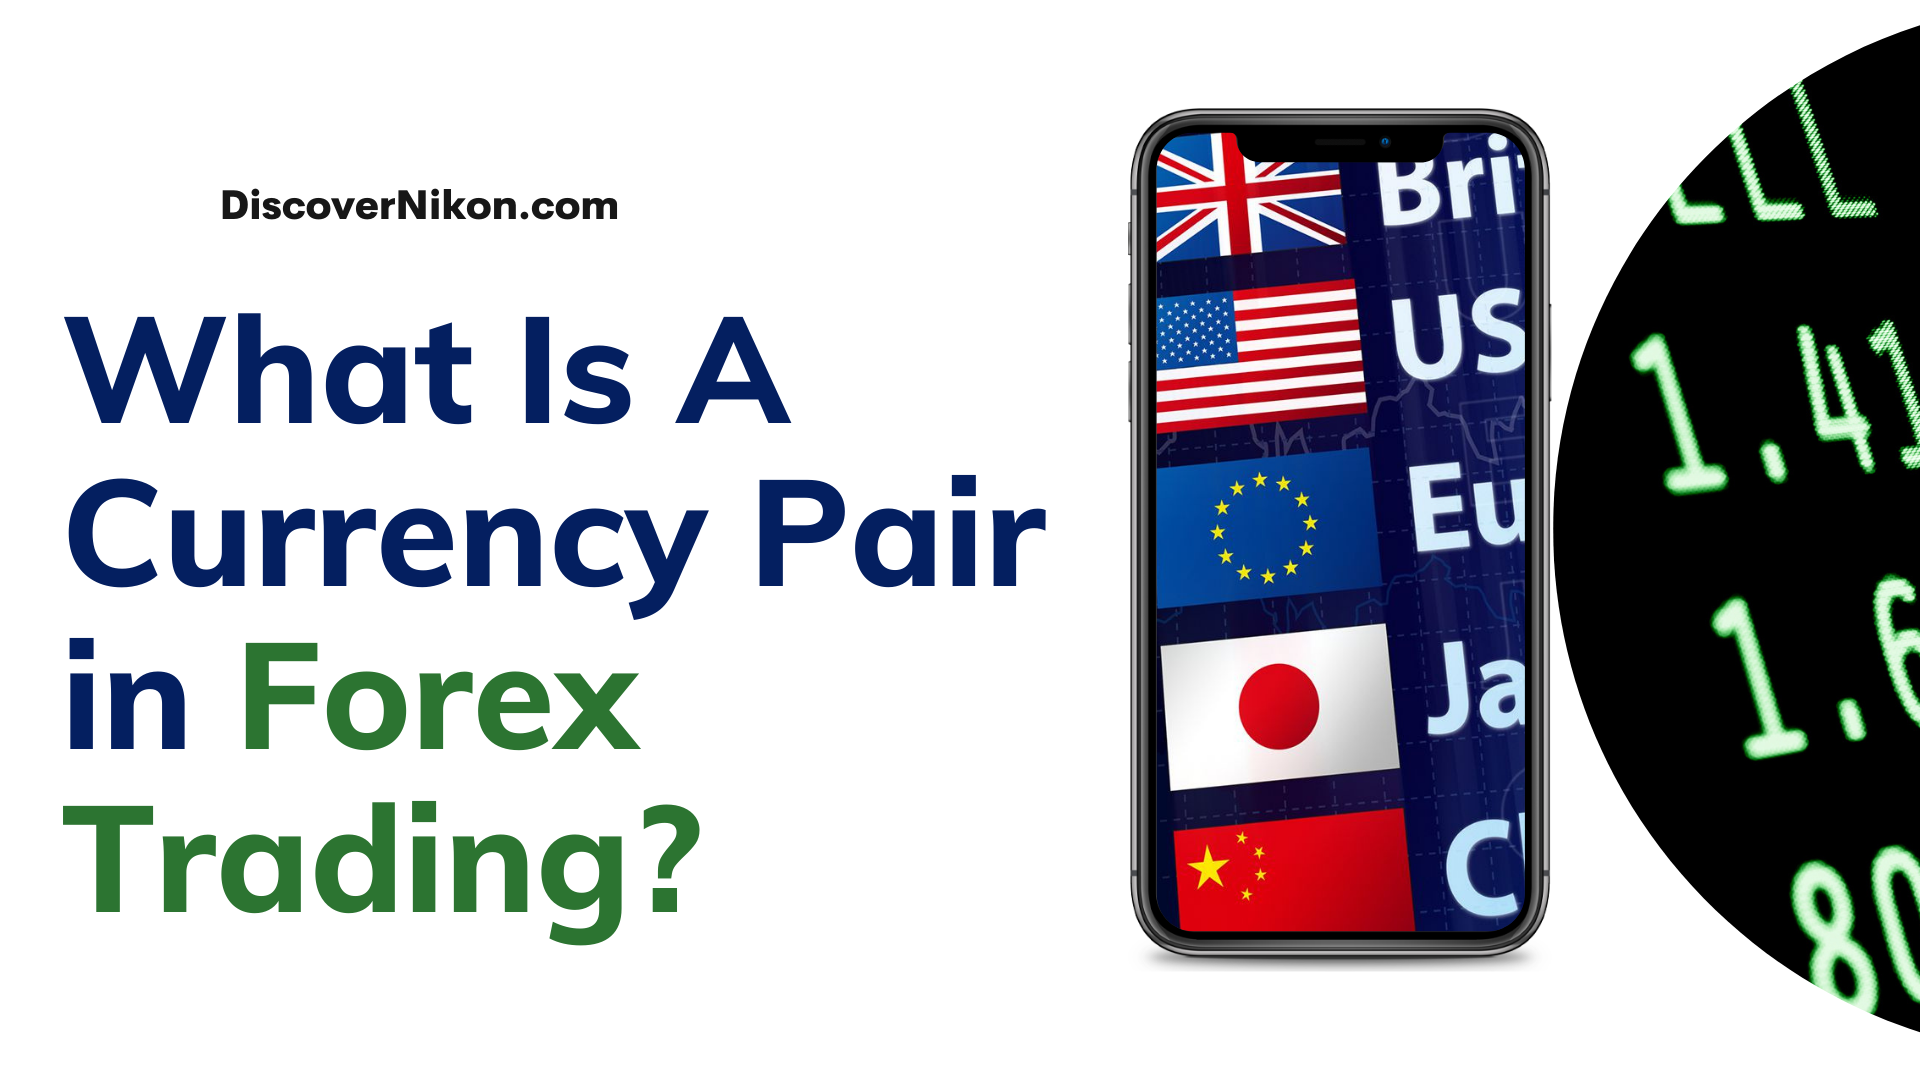 What Is A Currency Pair in Forex Trading